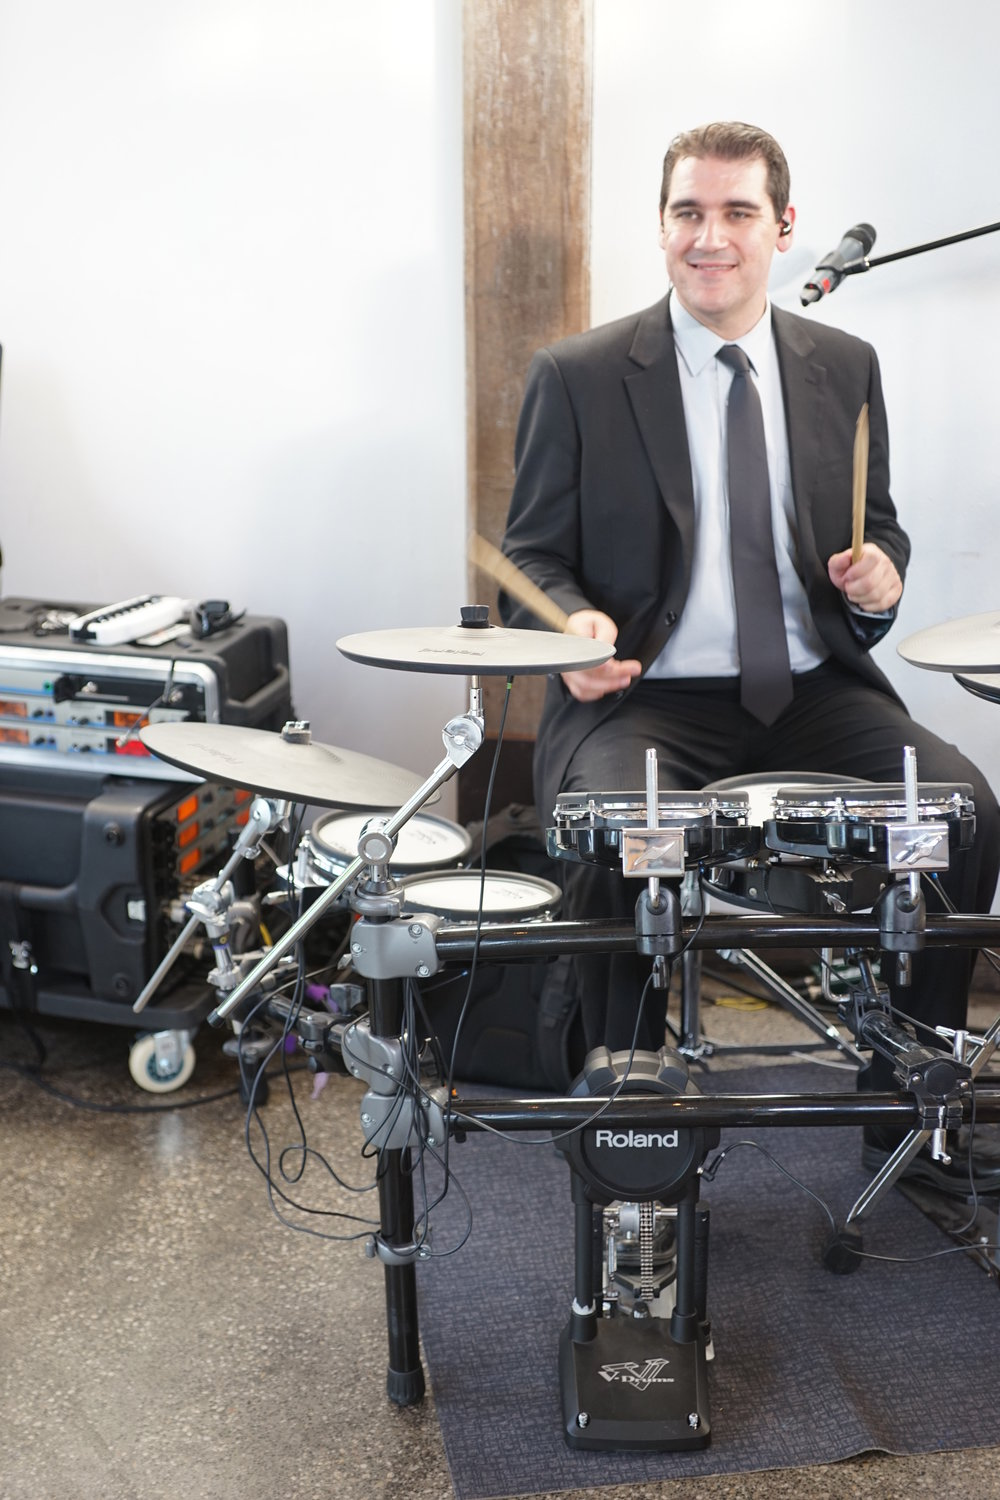 Dan playing the electronic V-Drums at a wedding